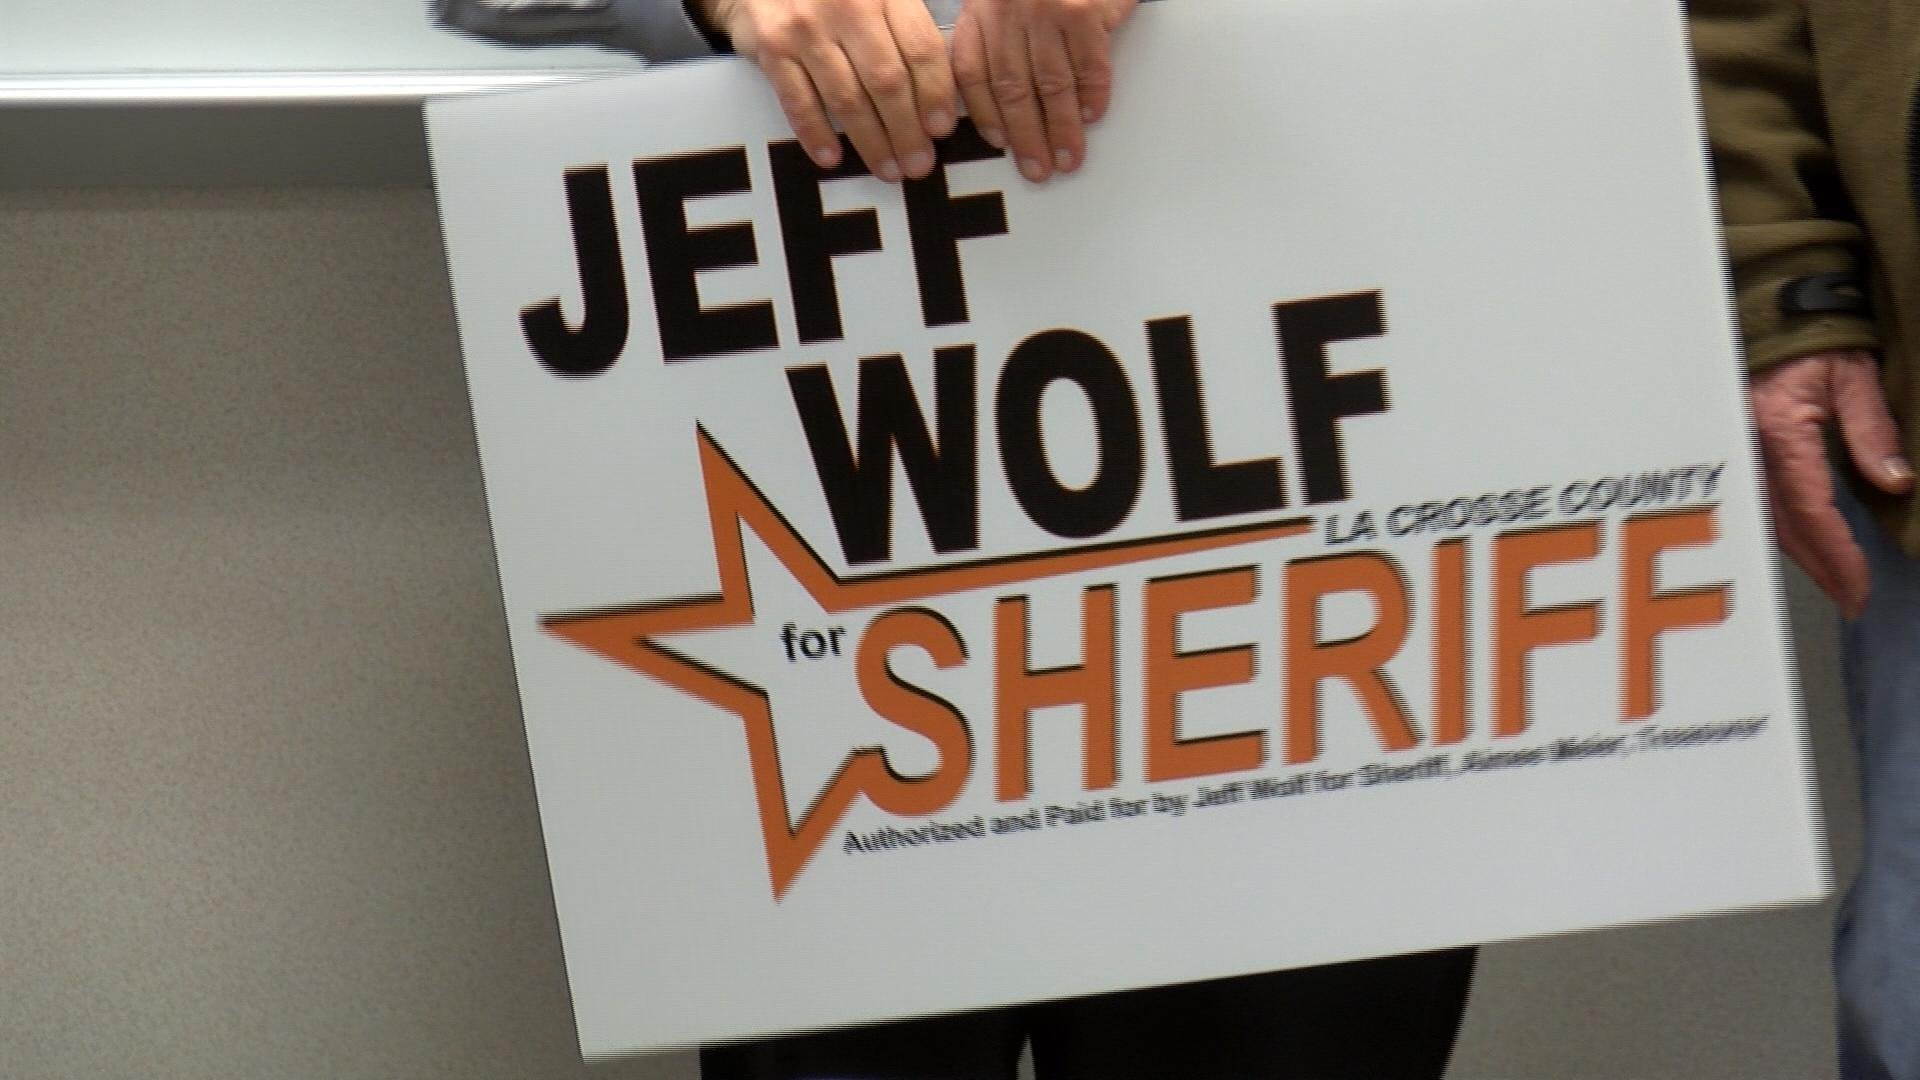 Supporter holds sign for Jeff Wolf.